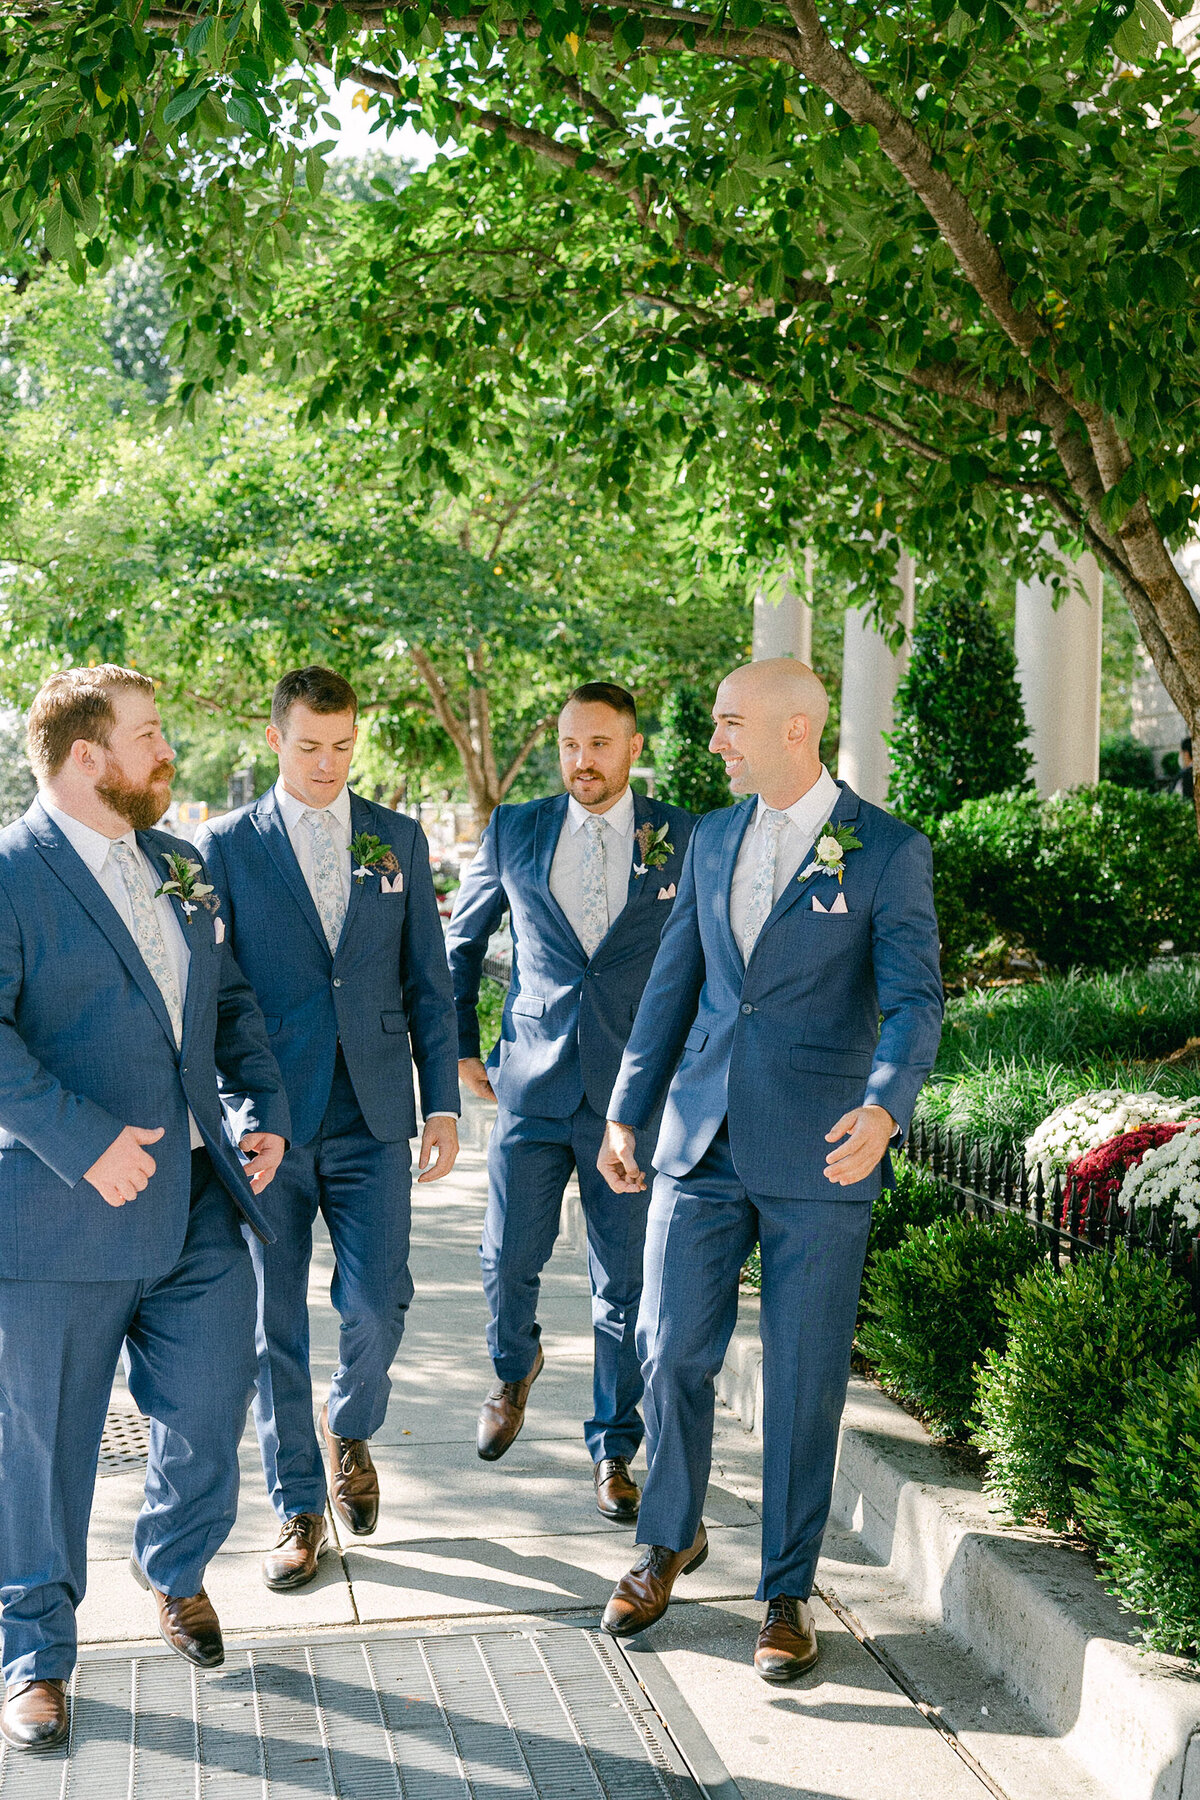 Jennifer Bosak Photography - DC Area Wedding Photography - DC, Virginia, Maryland - Jeanna + Michael - Decatur House Wedding - 1